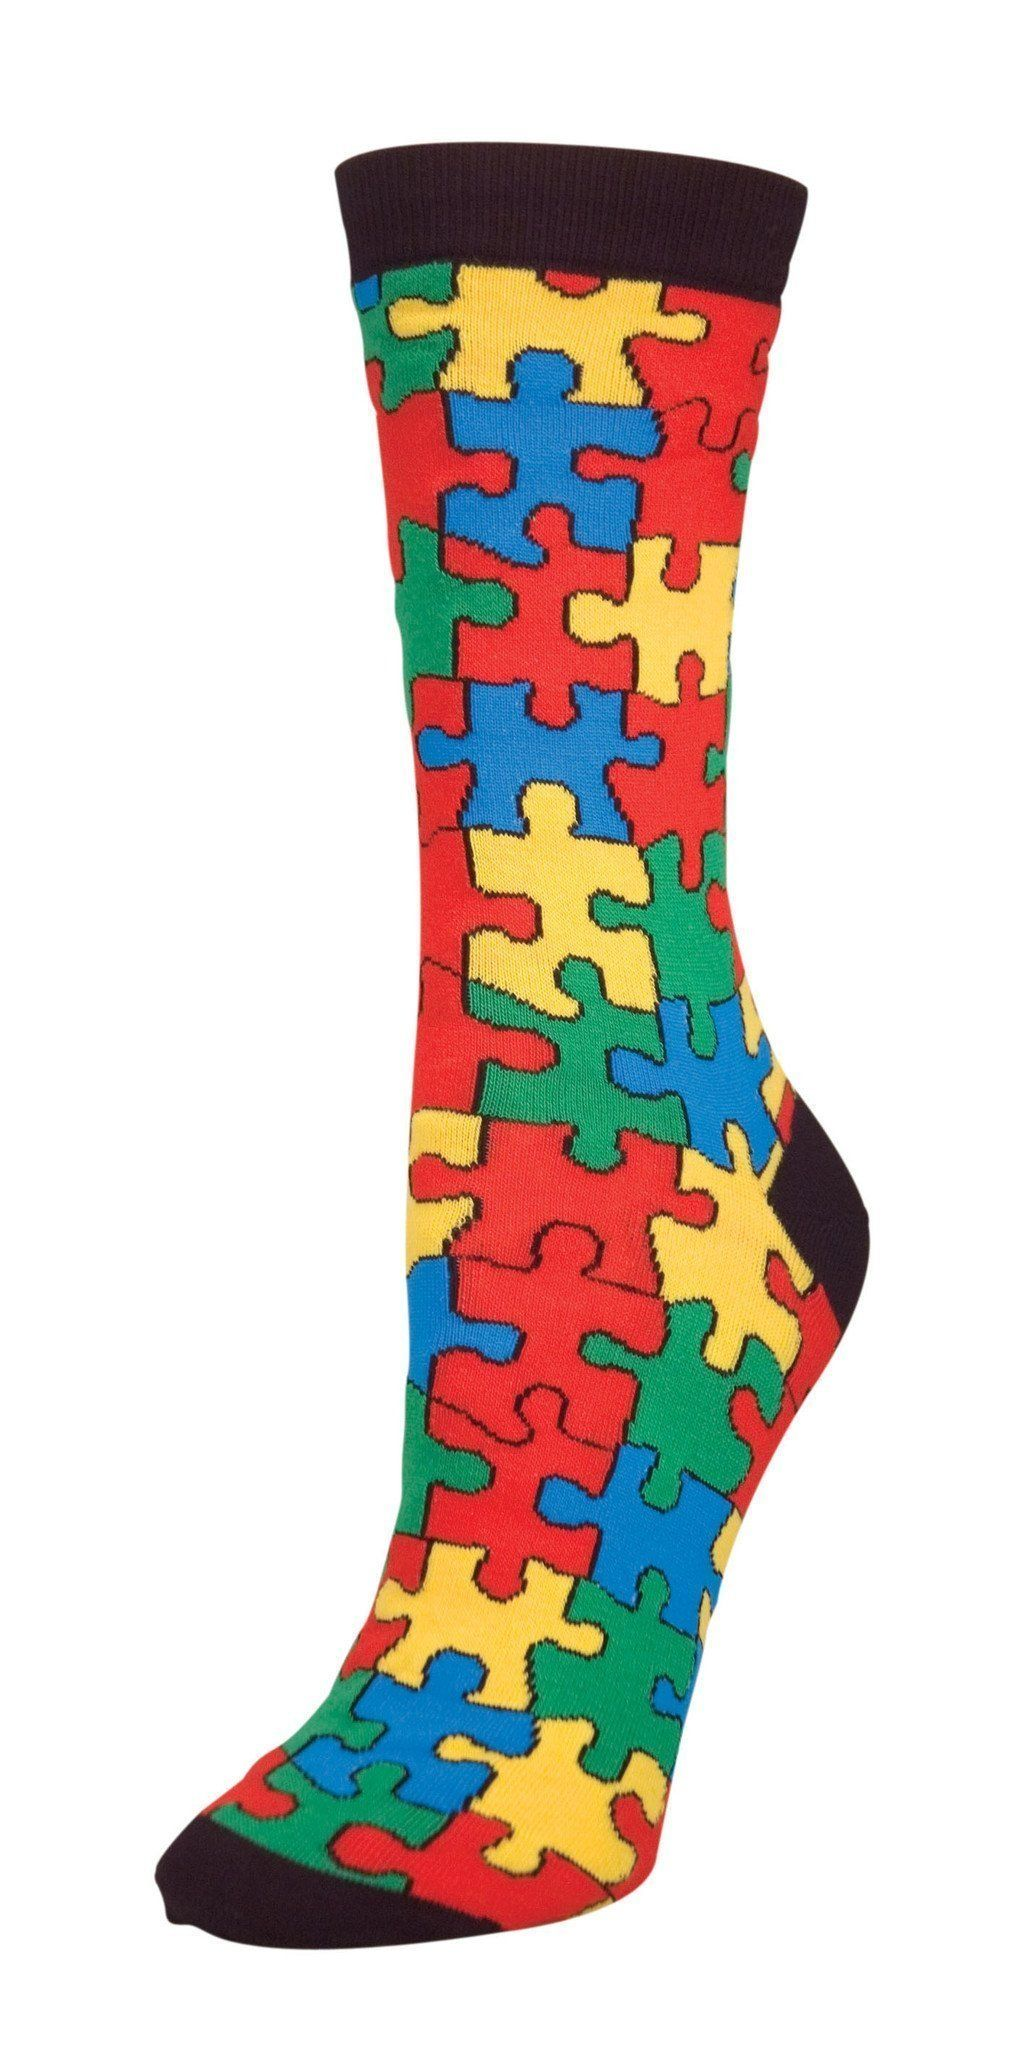 Socksmith - Puzzled Crew Socks | Women's - Knock Your Socks Off